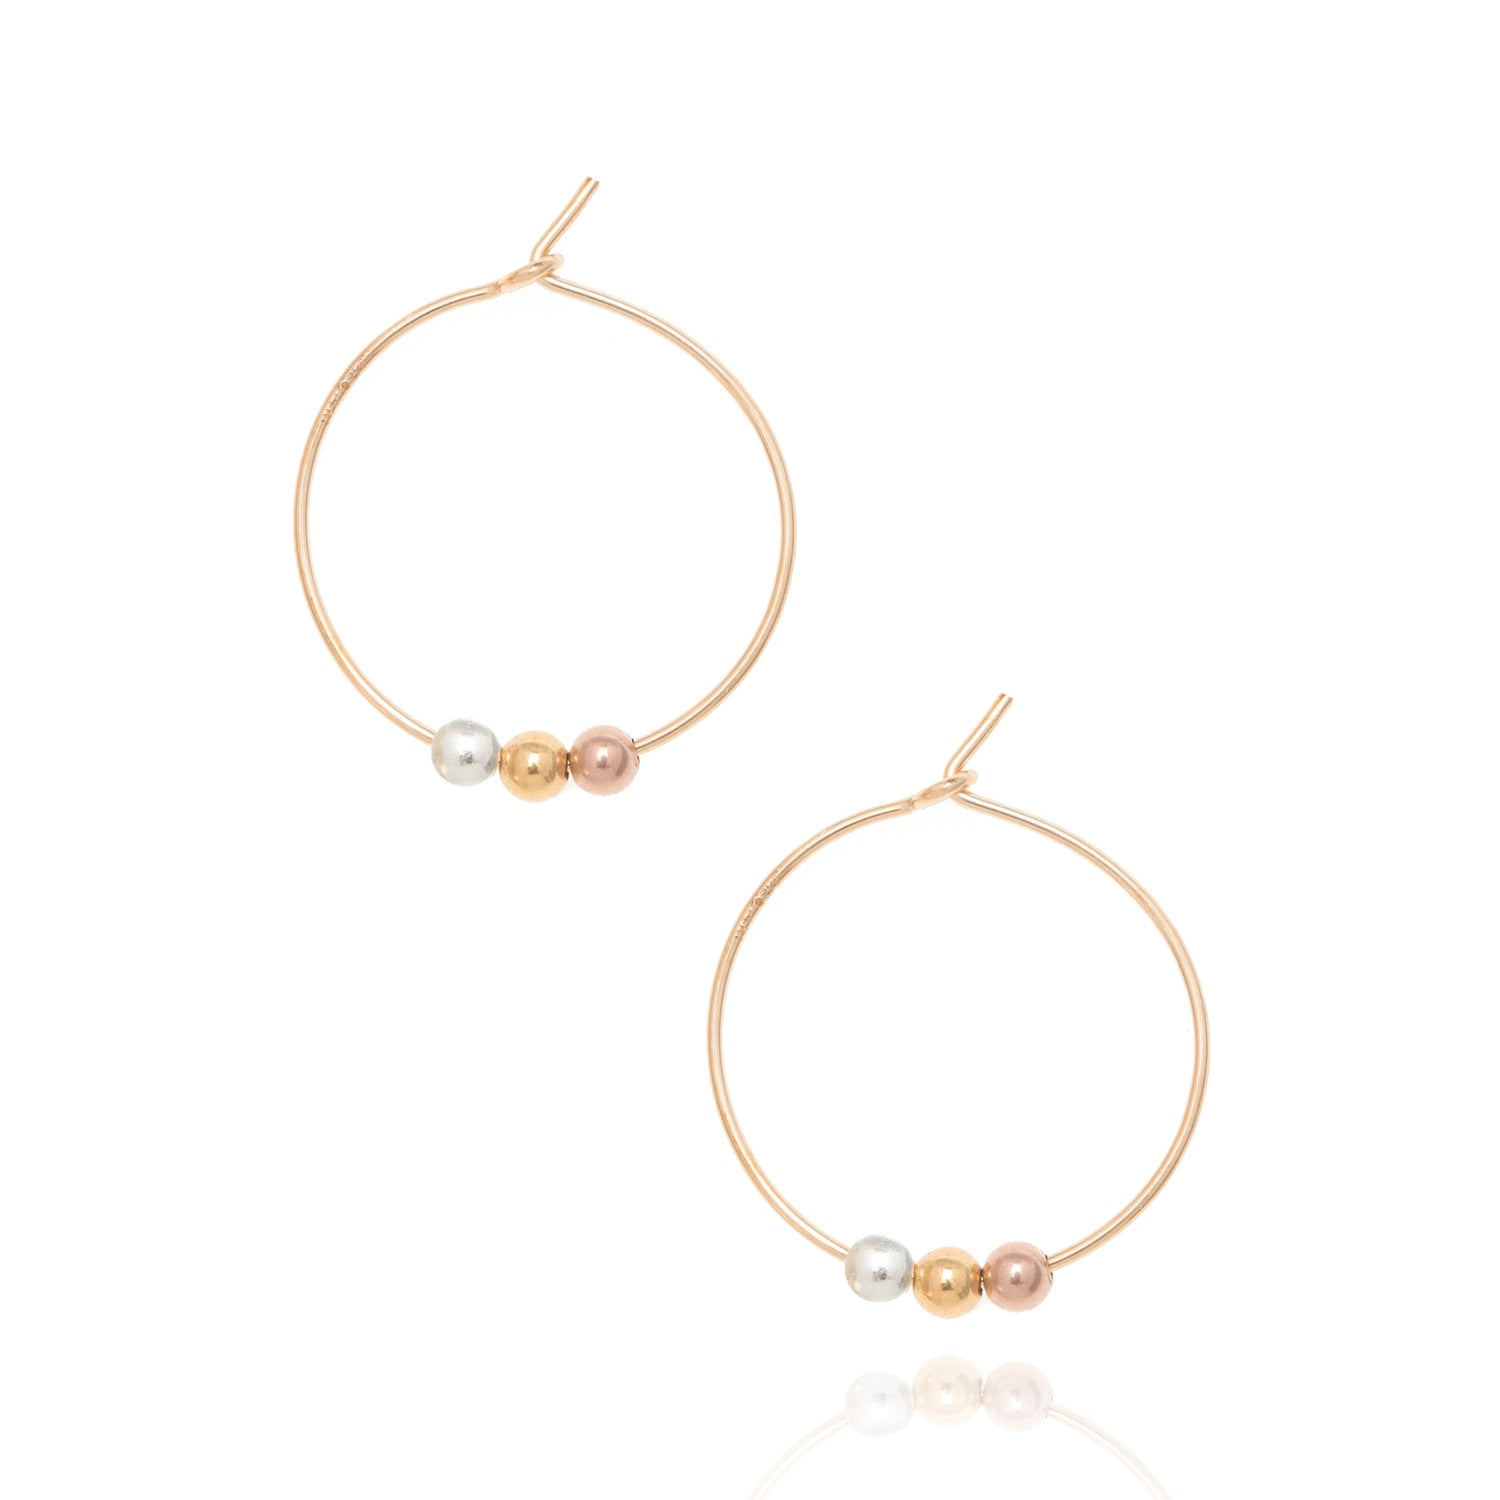 Spheres hoop earrings